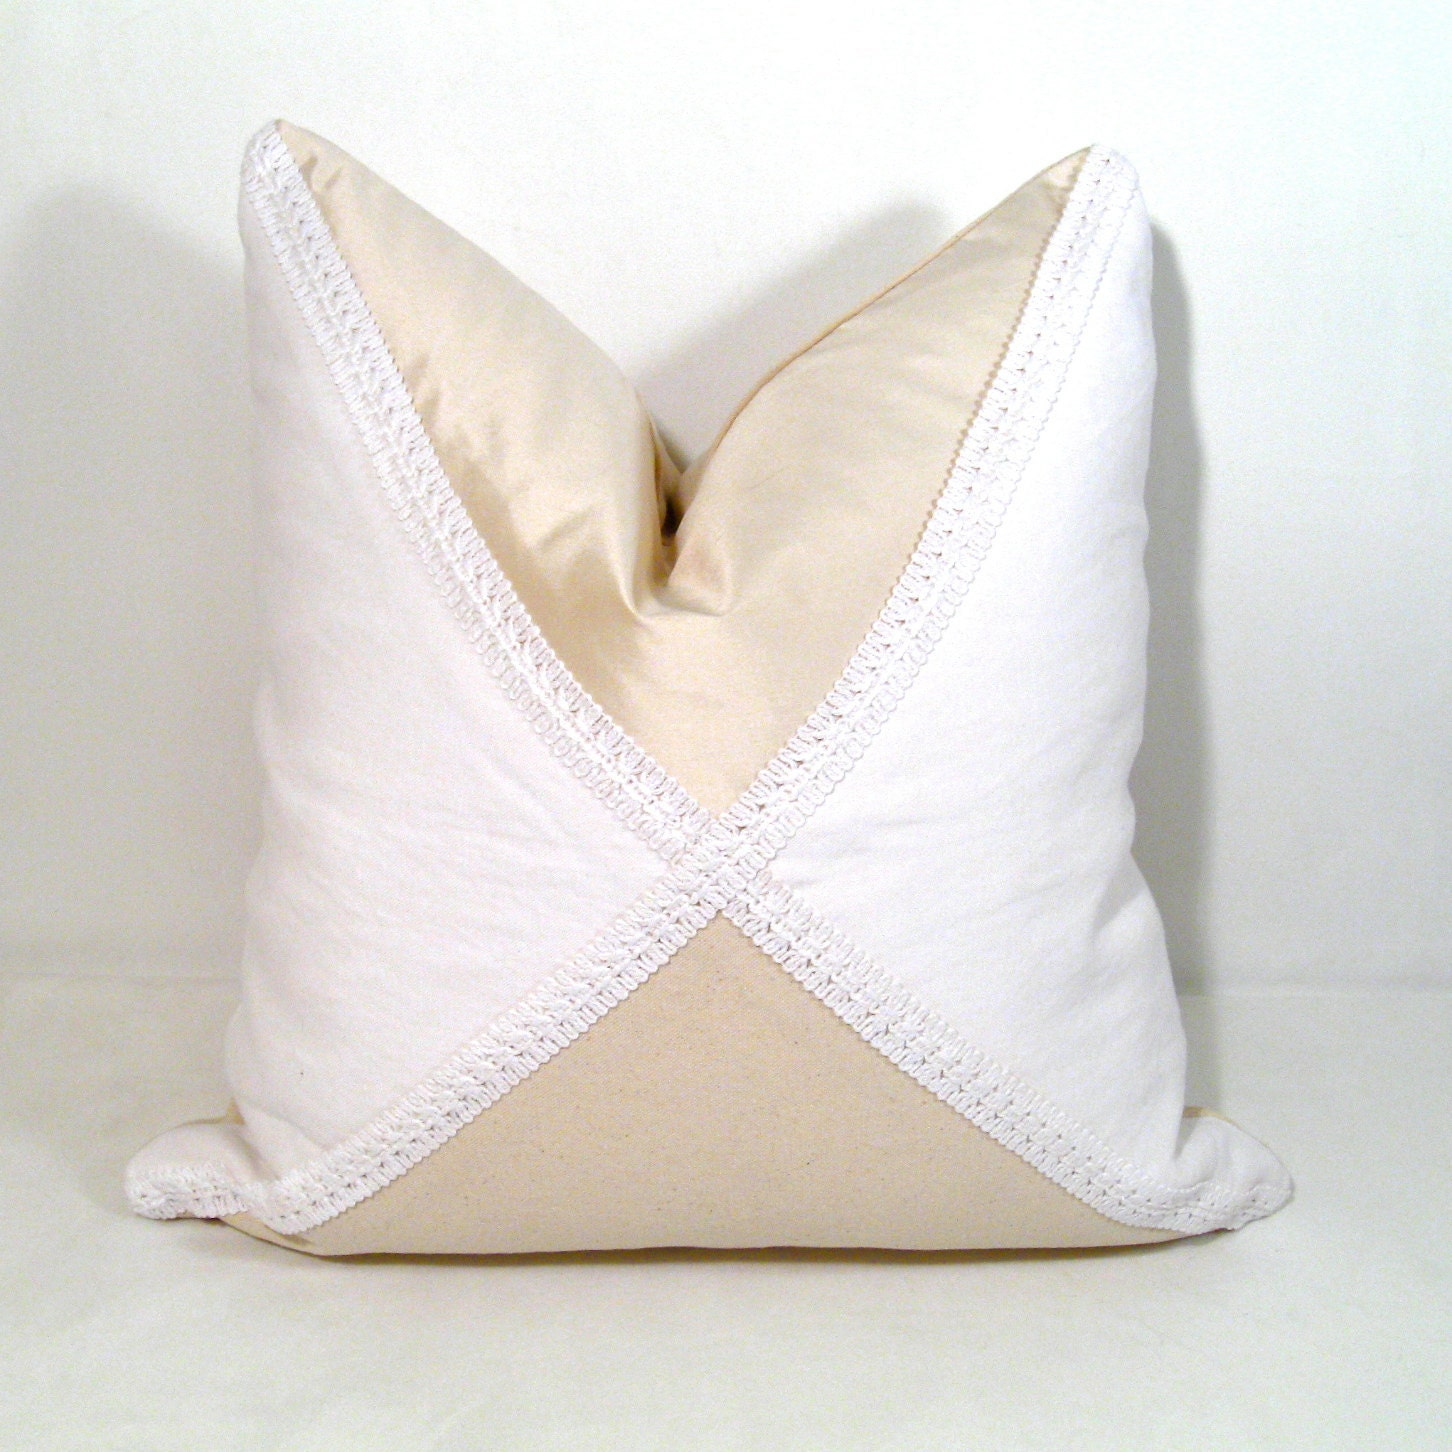 White Cream Throw Pillows : SALE Decorative Pillow Cover White Cream by SewSampleShop on Etsy